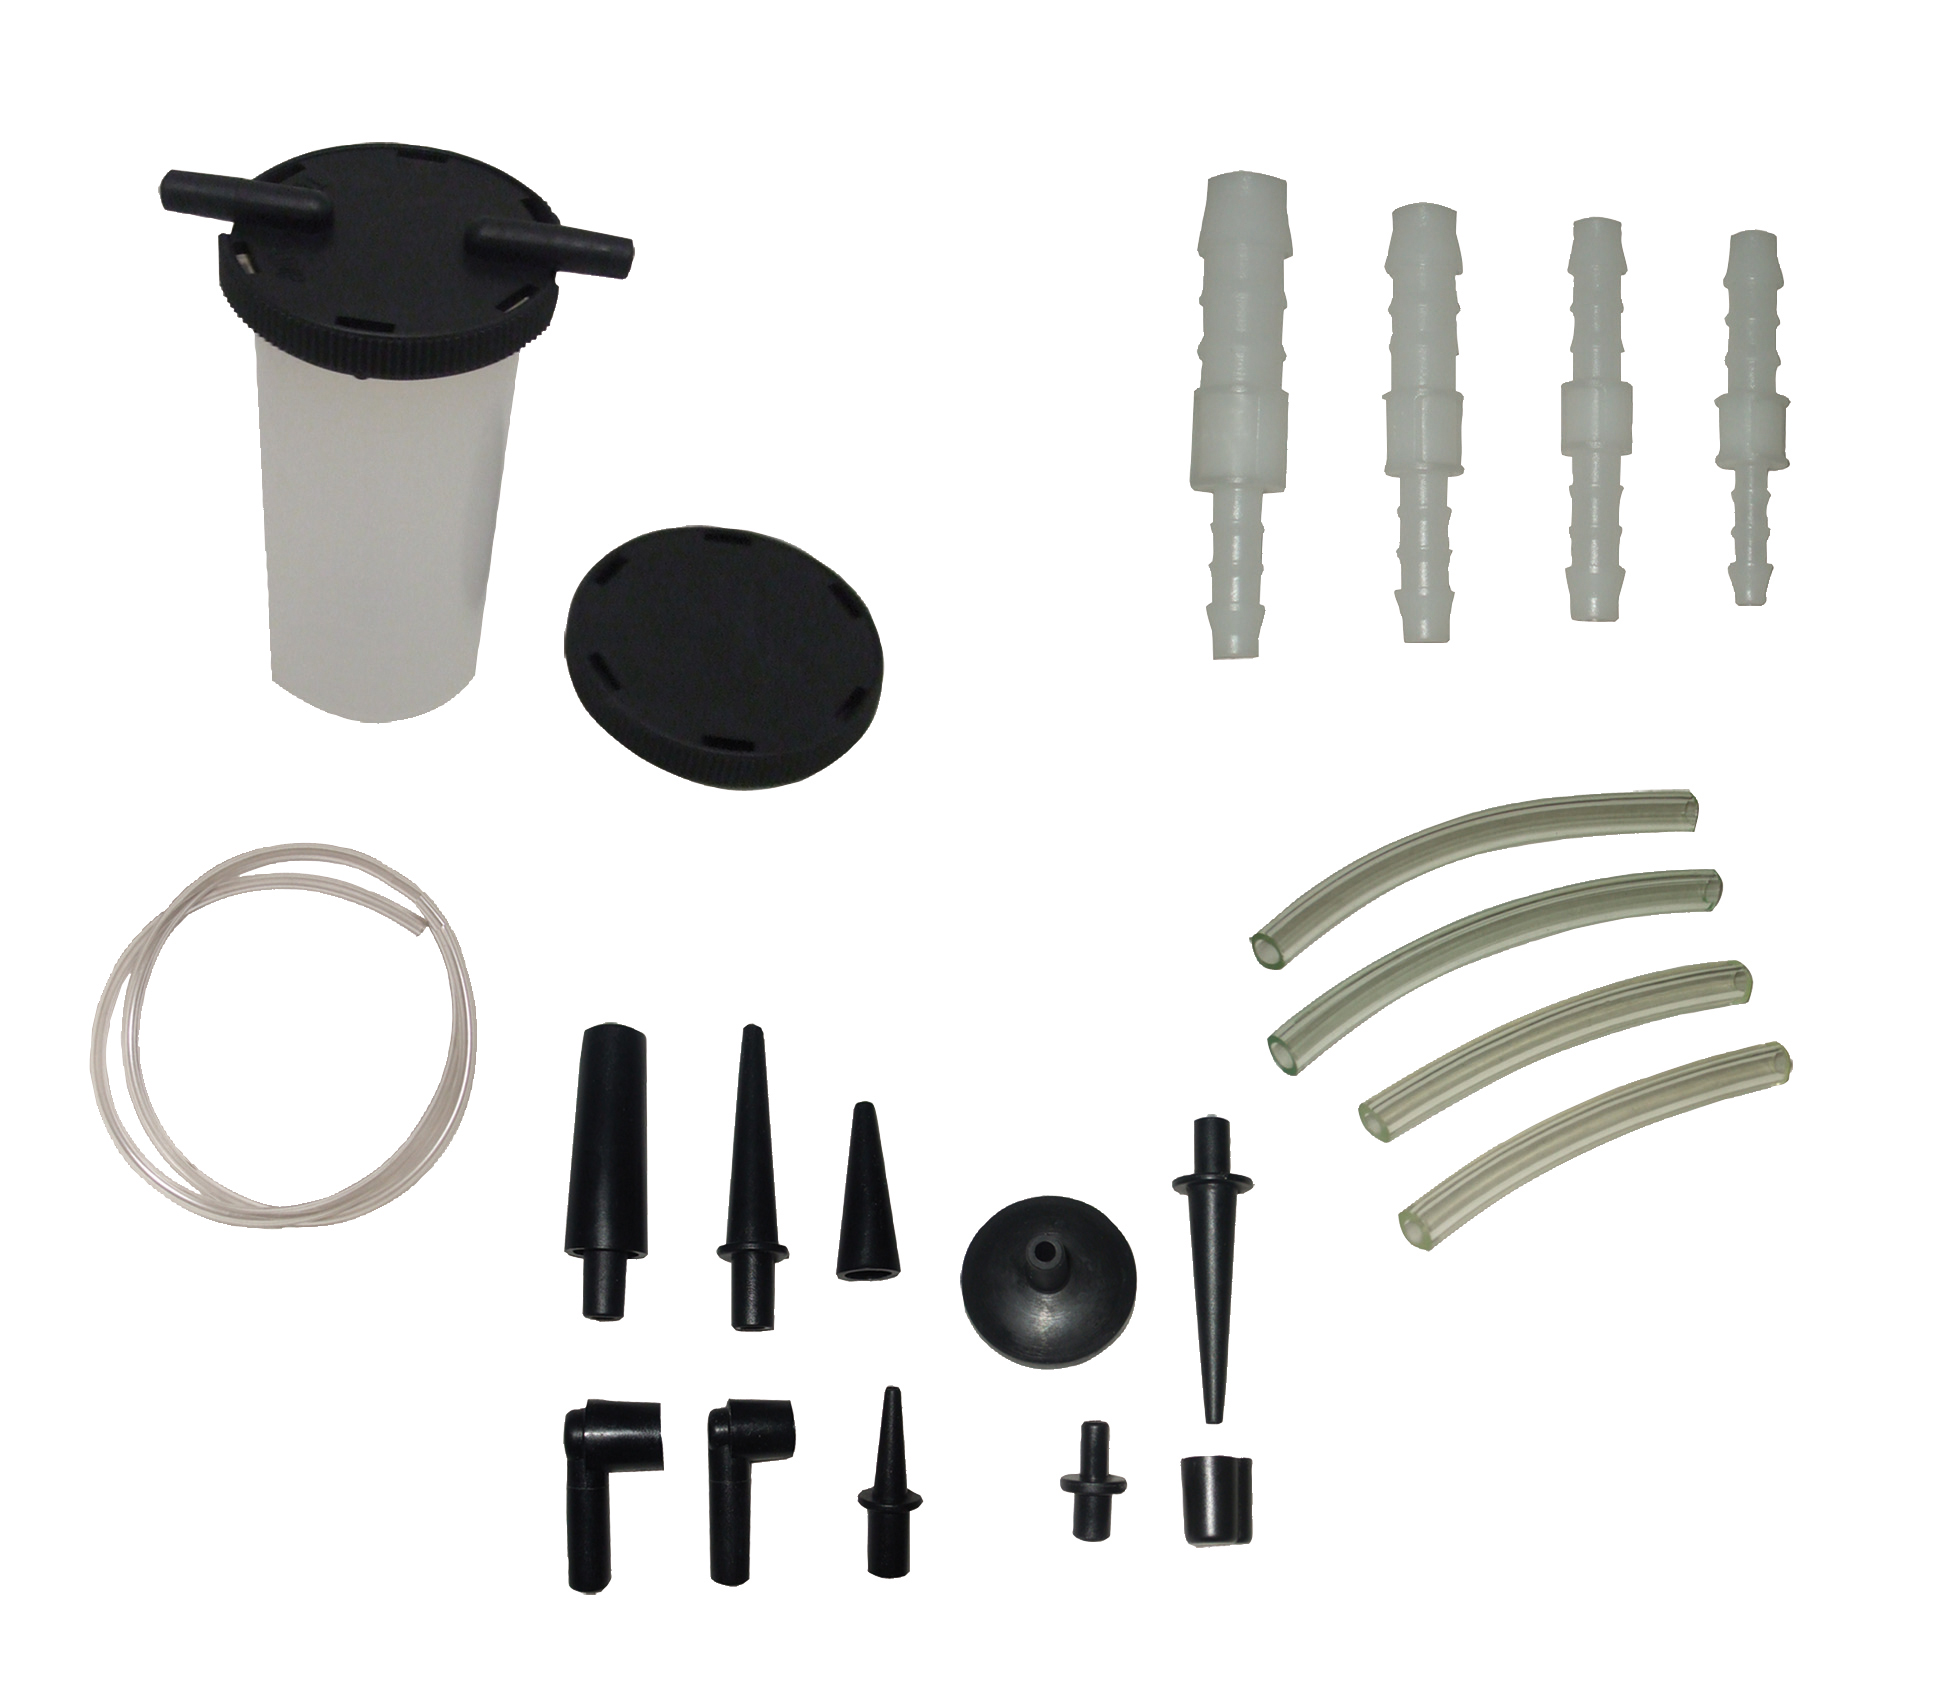 Sykes Pickavant Universal Bleed Bottle and Accessory Set Kit 01391500